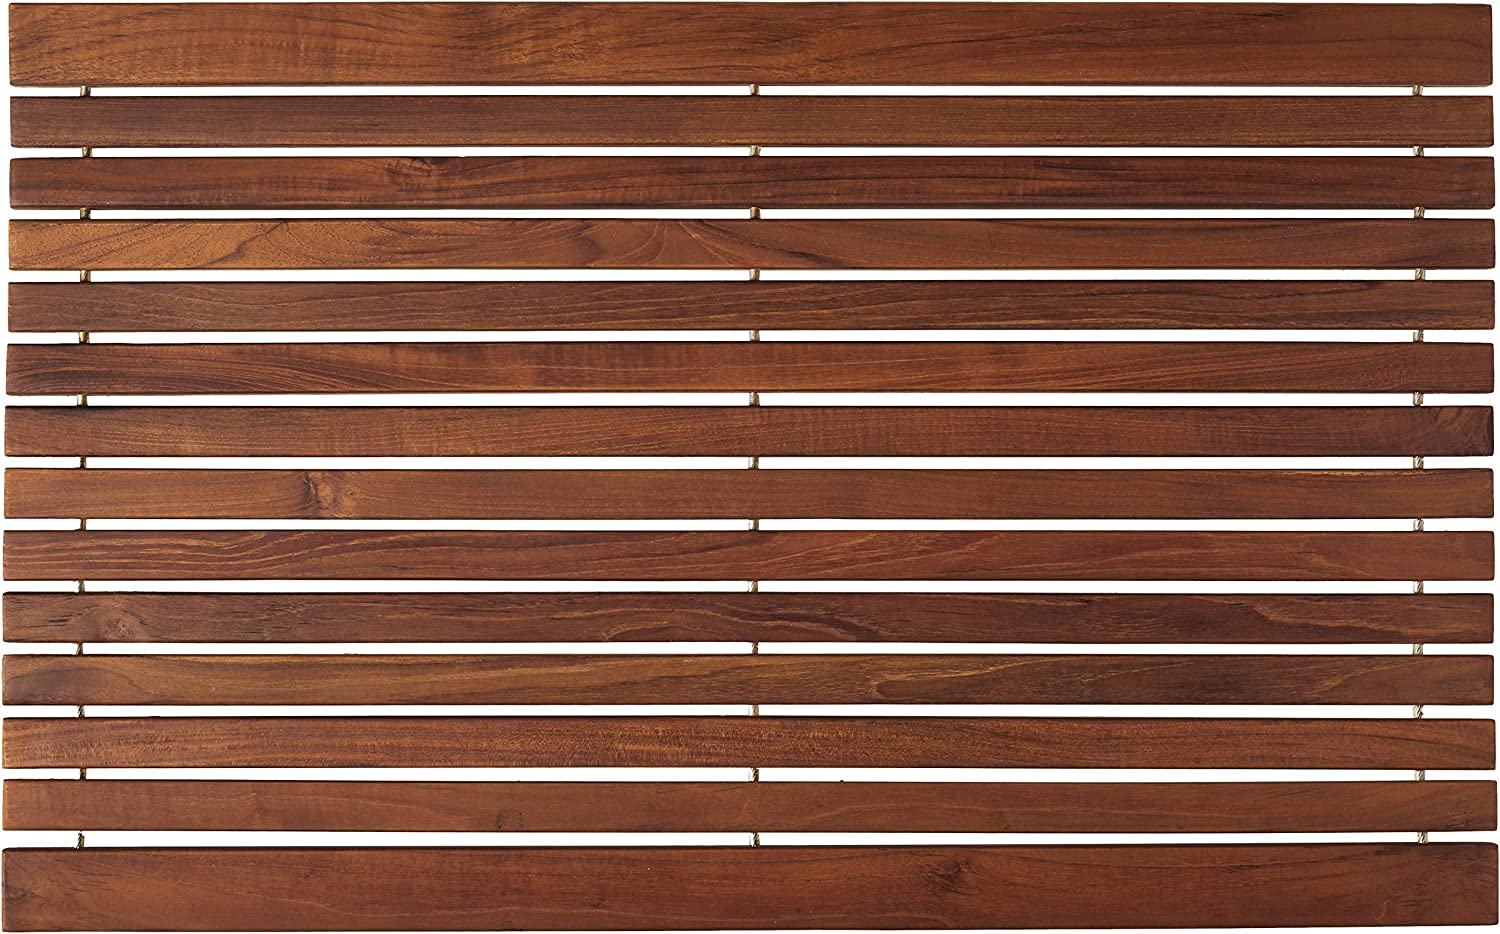 Bare Decor COSI Shower Mat in Solid Teak Wood Oiled Finish, 31.5  x 20 ,